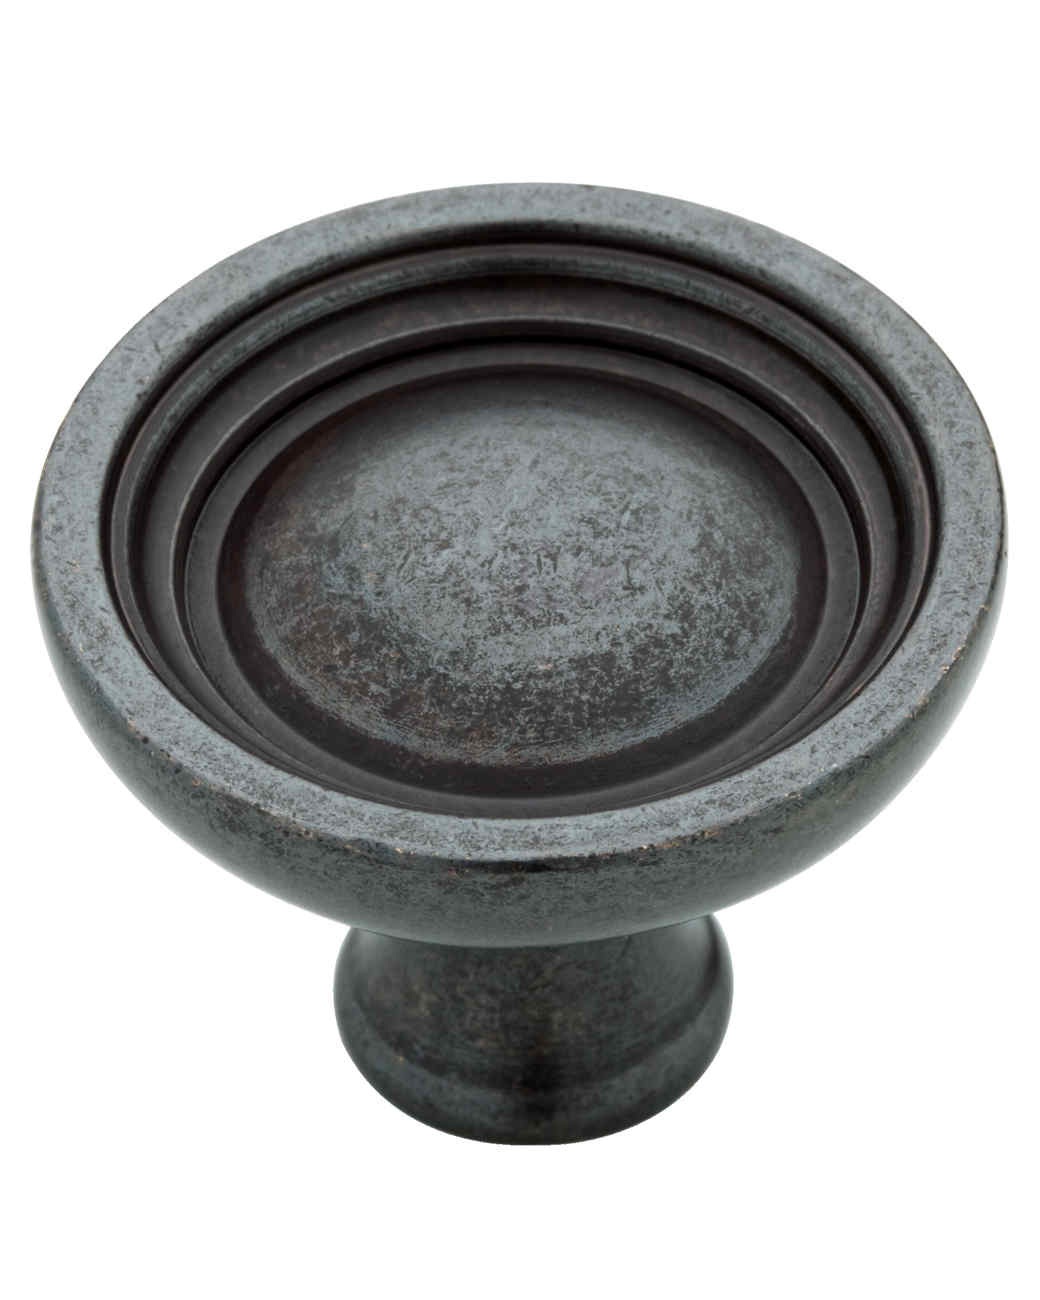 kitchens-bowl-knob-ms108139.jpg